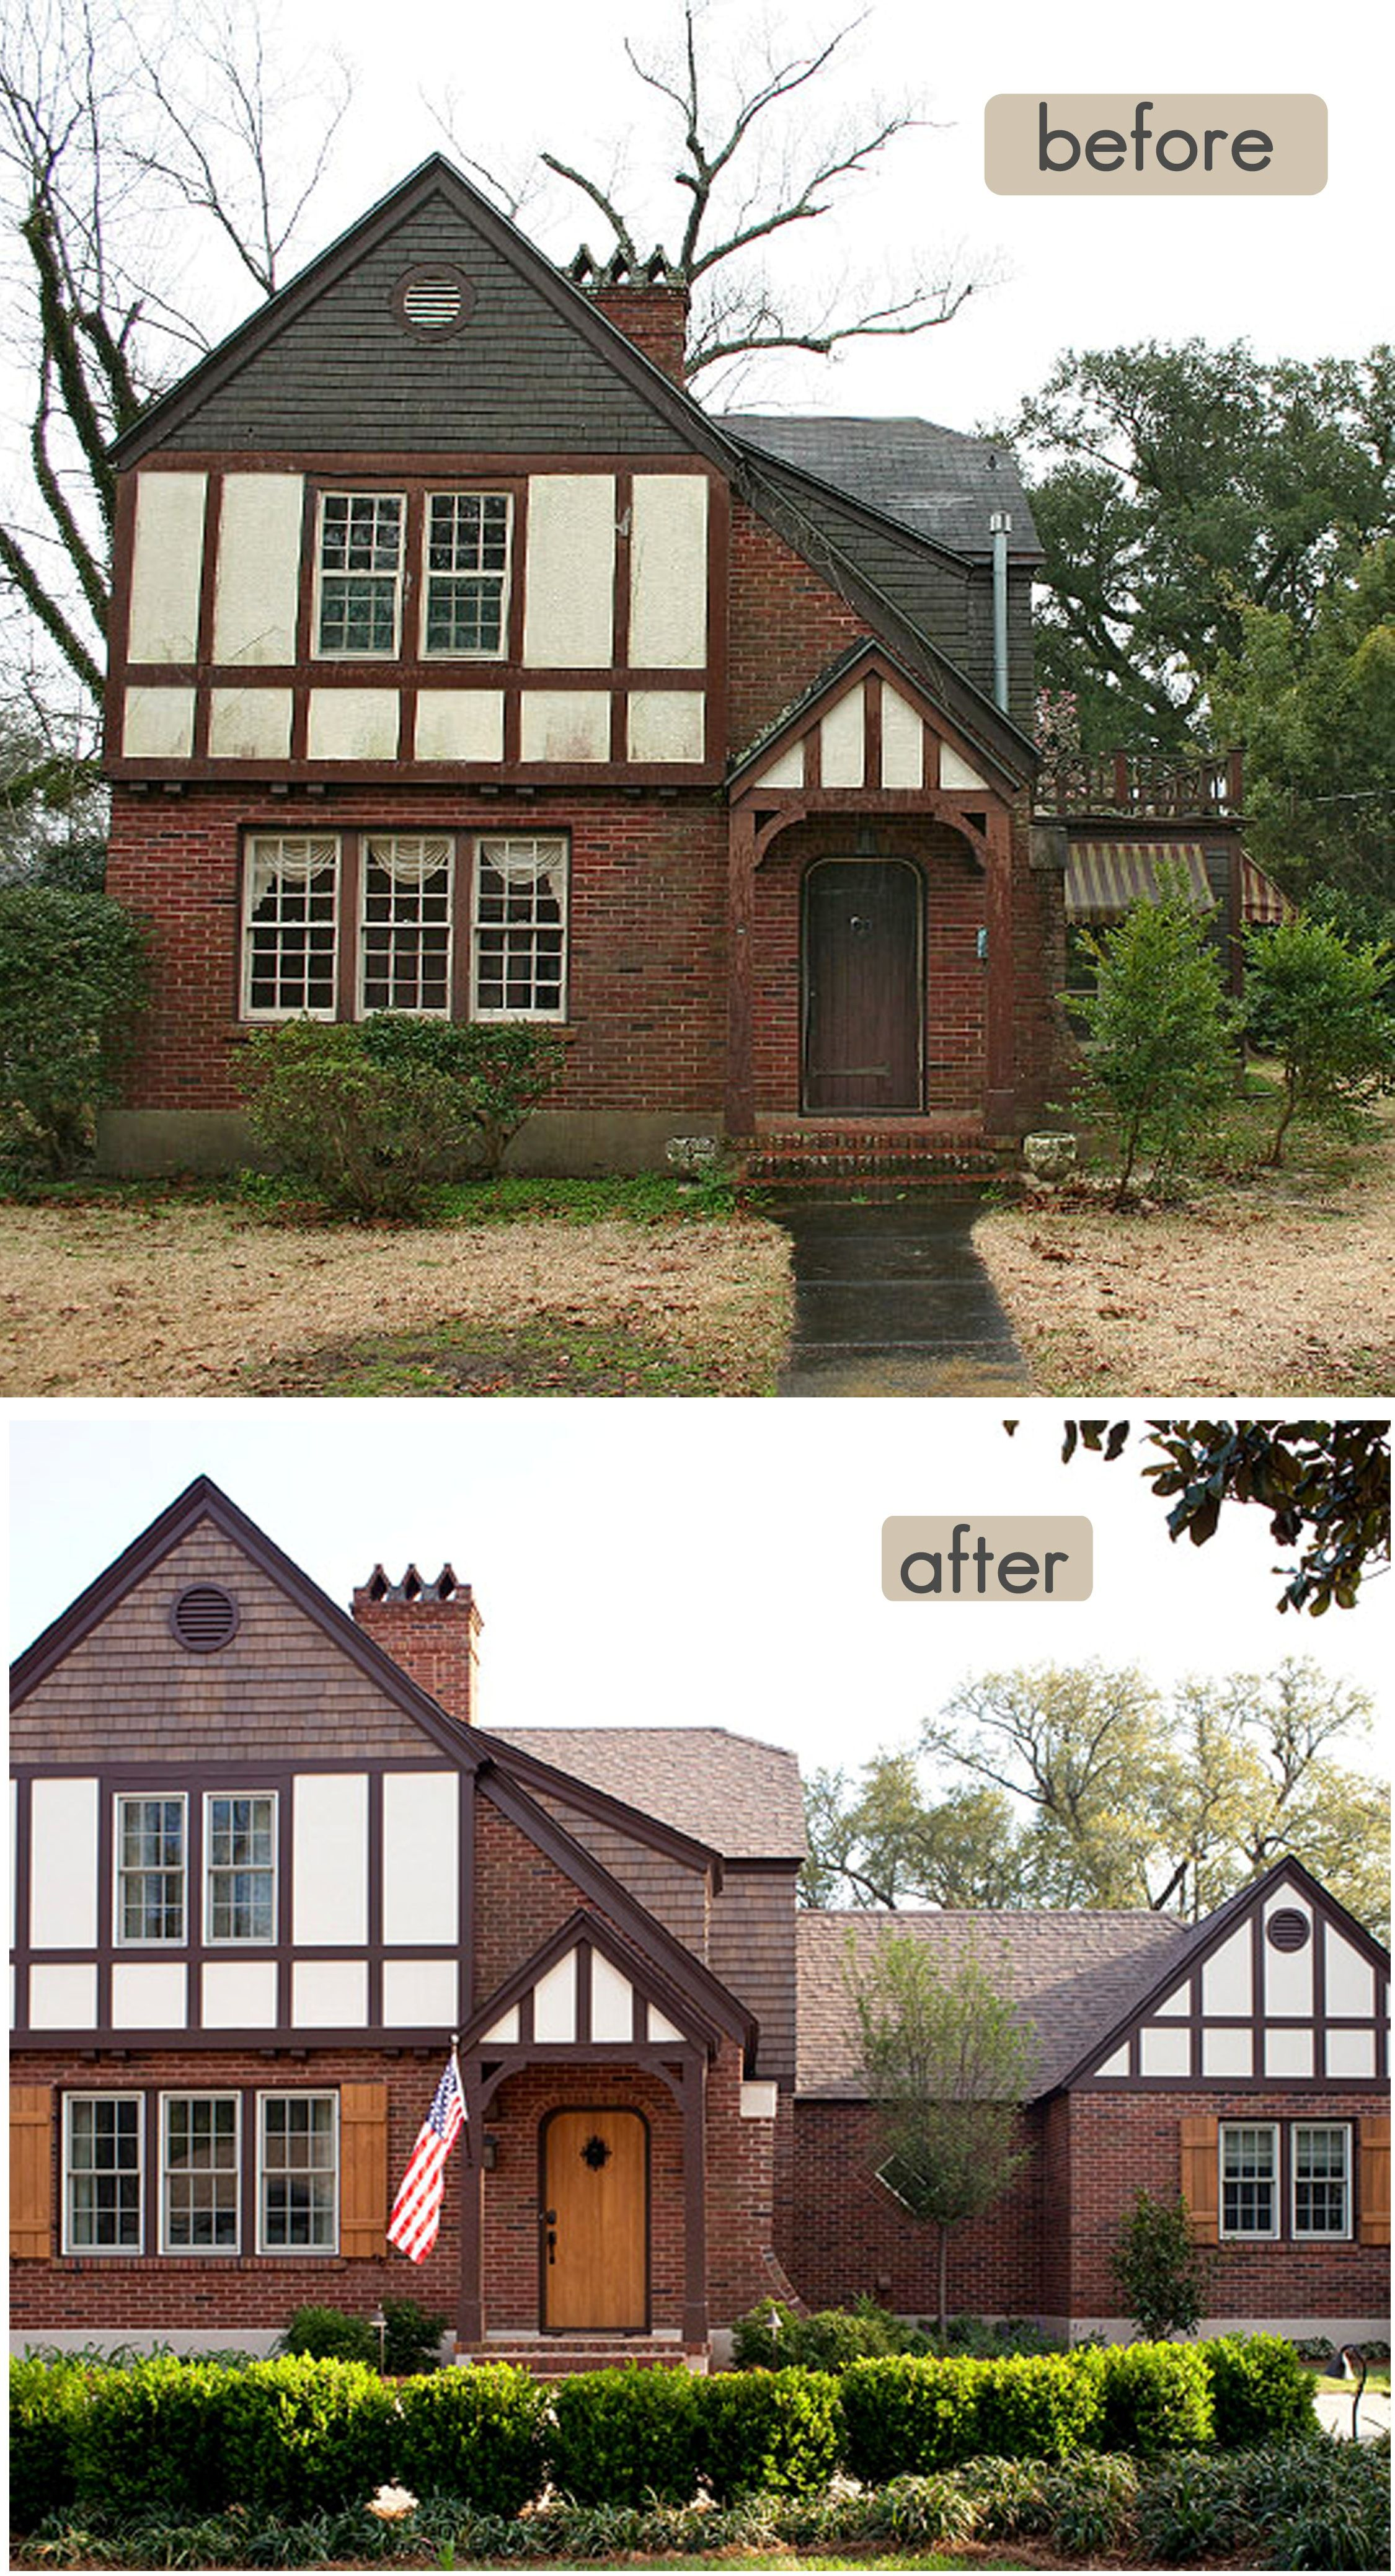 Investment group tudor style homes fixer upper home renovation home improvement